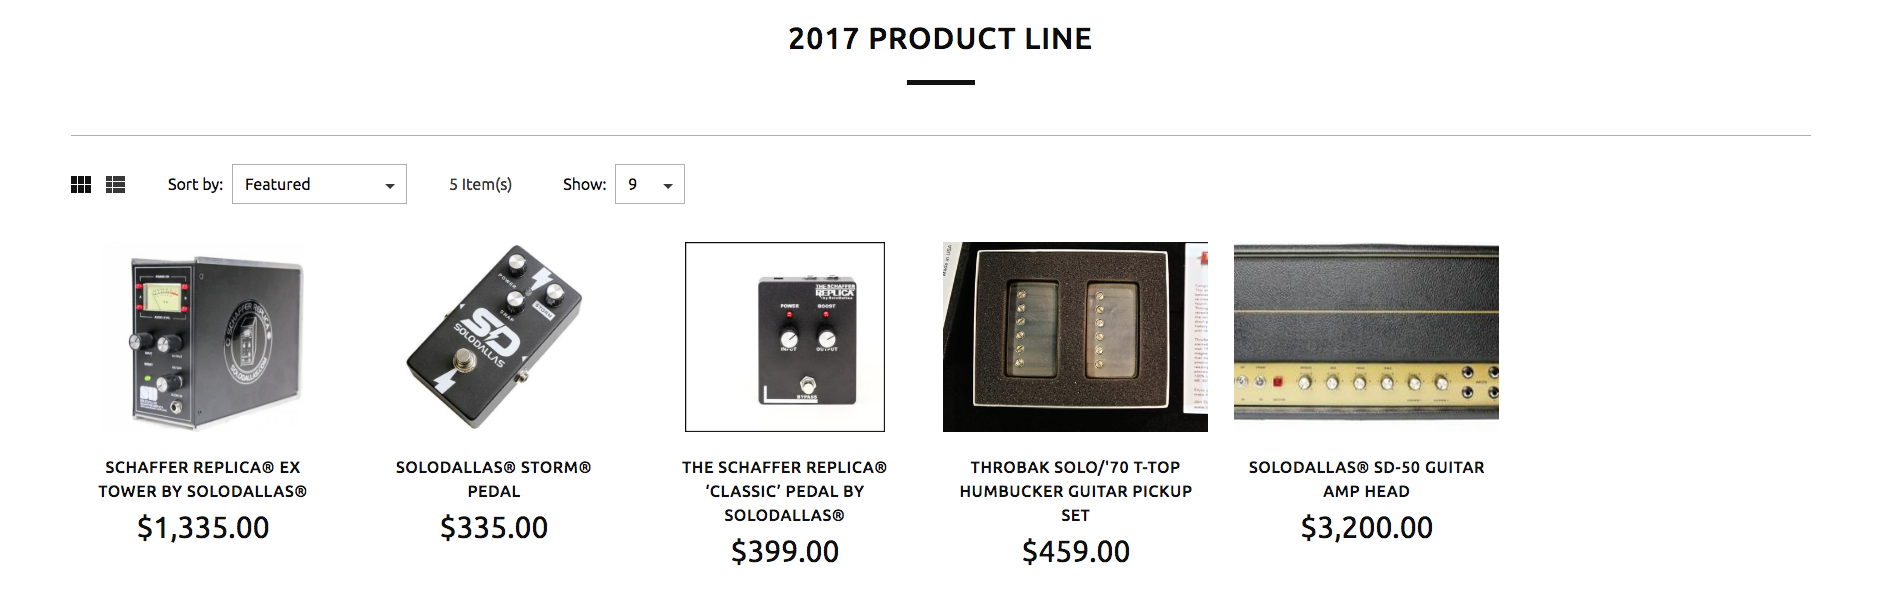 SoloDallas 2017 Product Line